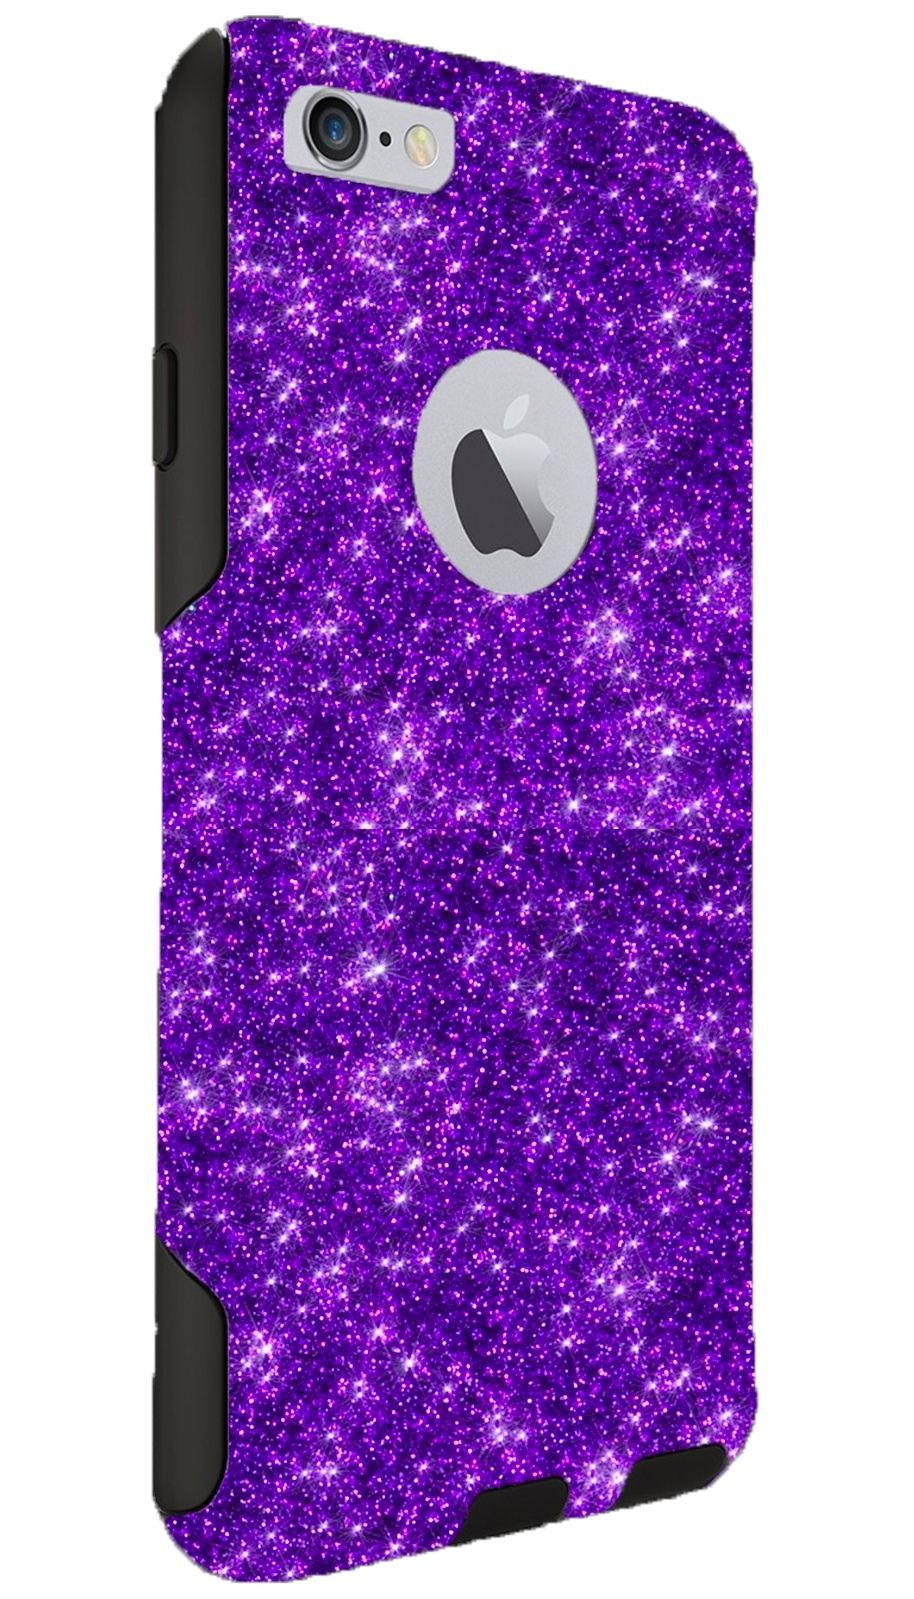 1535188a184 Otterbox Commuter Case Customized Glitter For Iphone 6/6S Plus Purple/Black